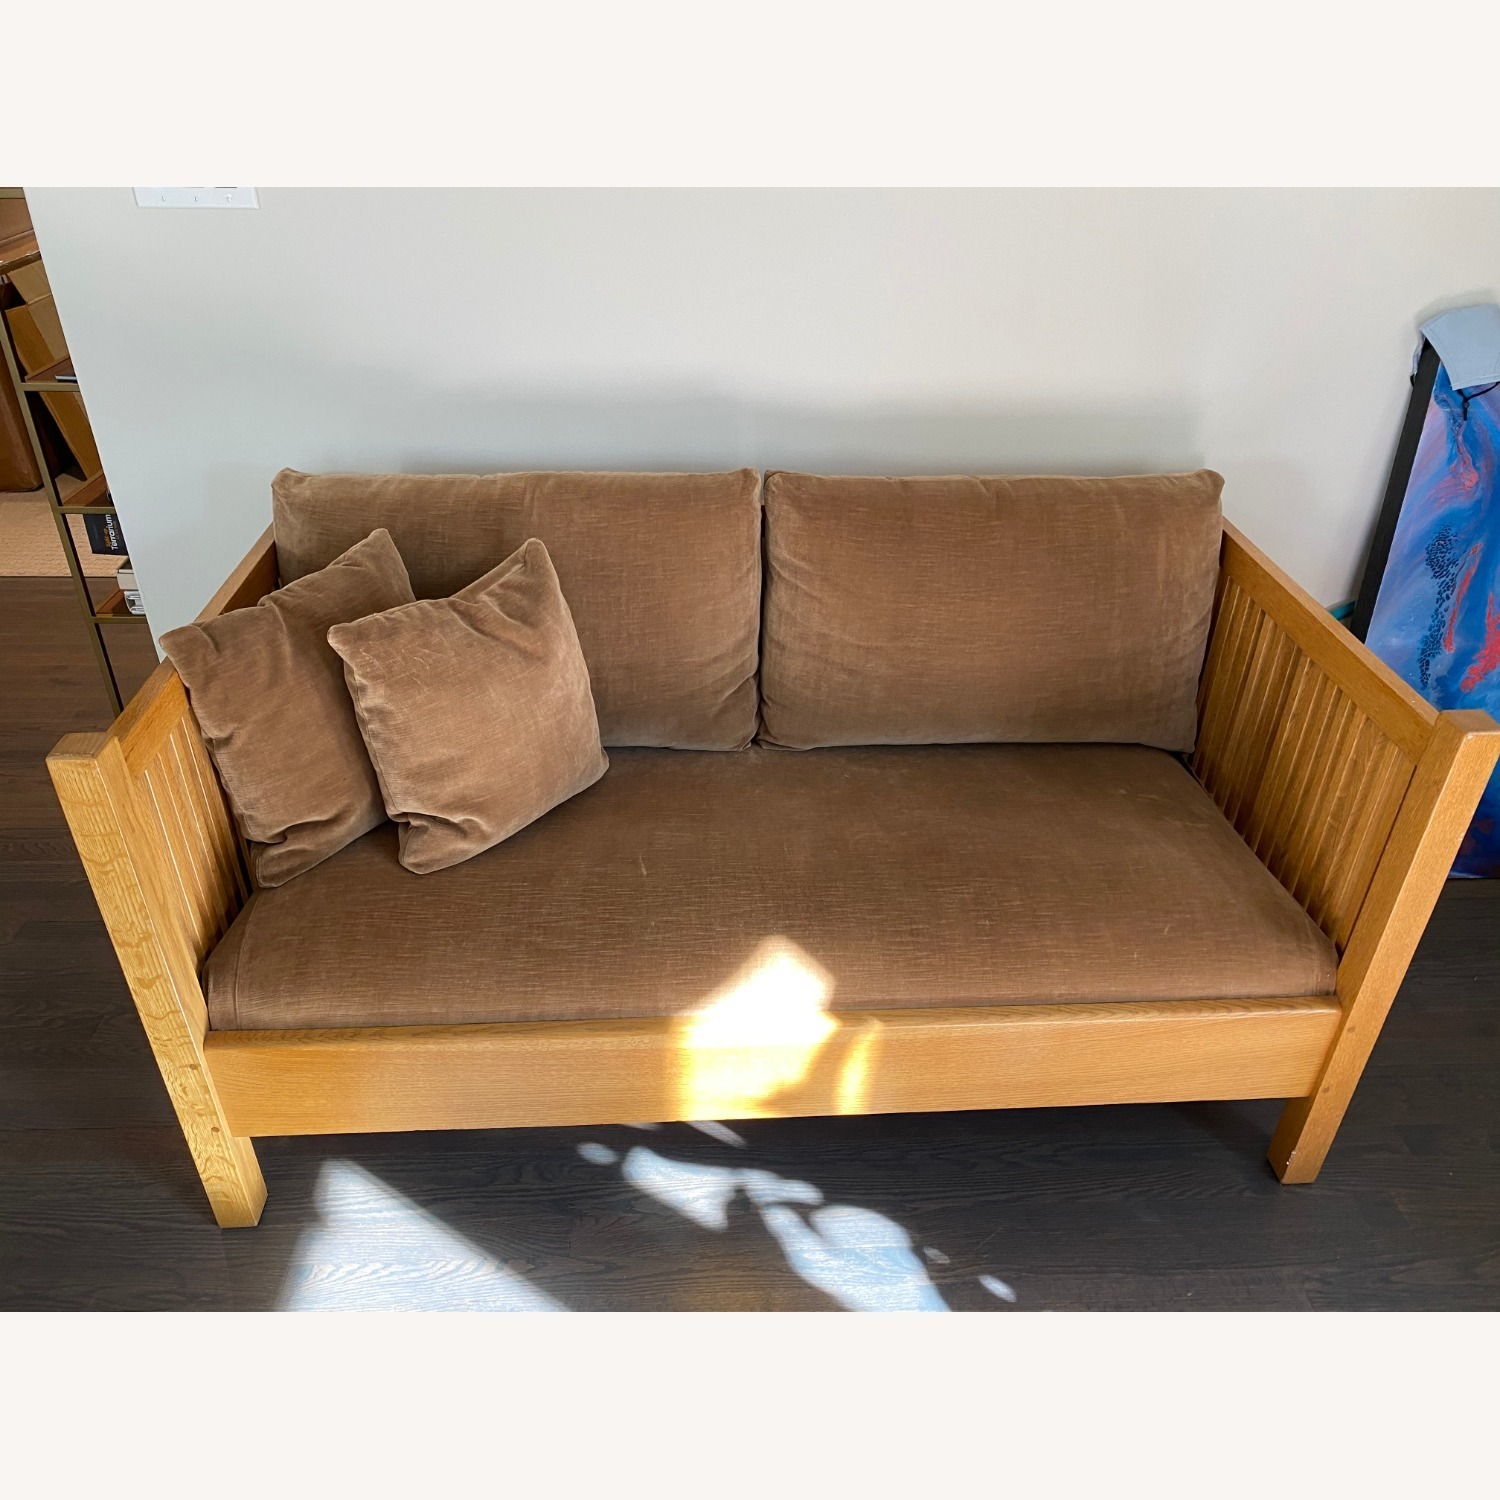 Stickley Sofa-Mission Style Oak Spindle Collection - image-1